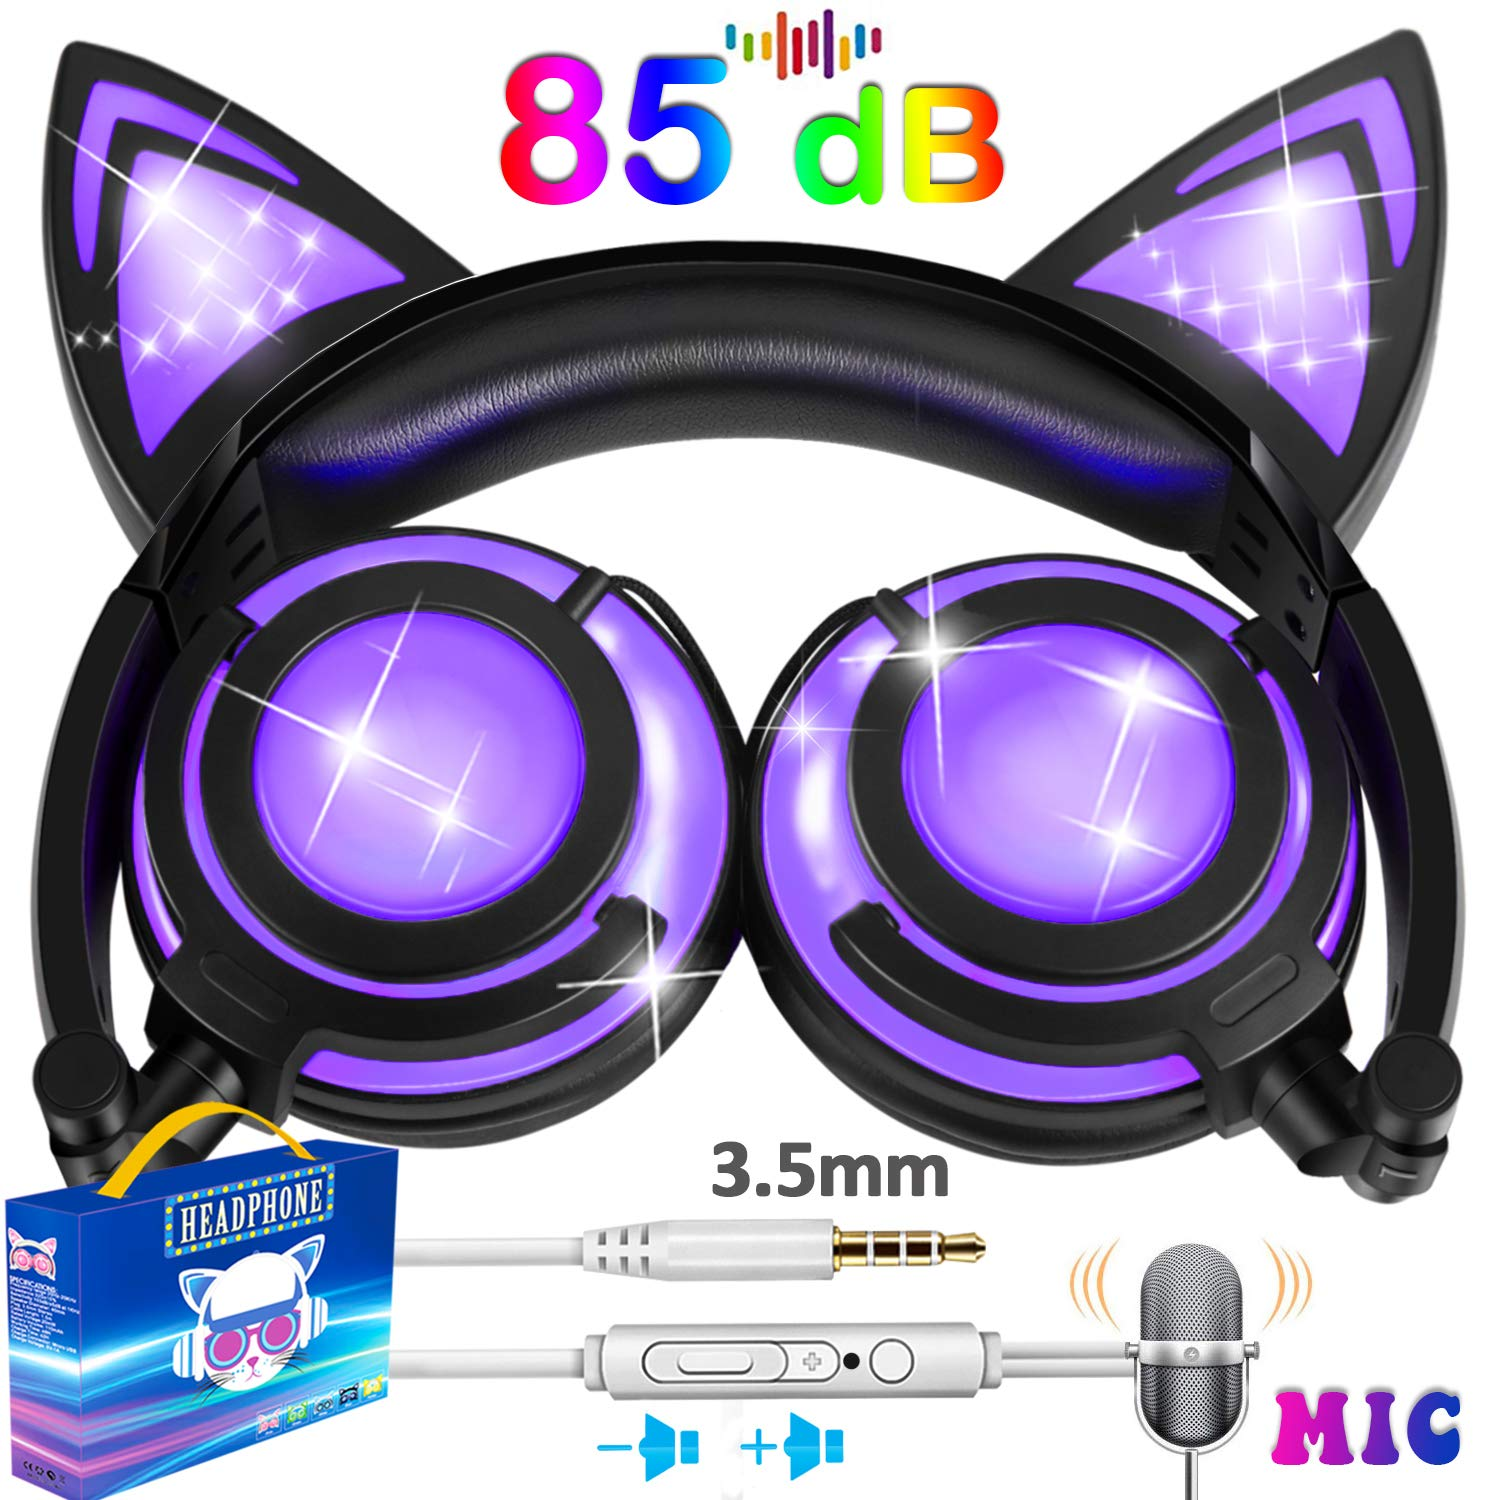 Kids Cat Ear Headphones for Girls Boys Toddler with Mic LED Light 85dB Volume Limit USB Rechargeable Wired Foldable iGeeKid Over/On Ear Headset Phone Tablet Travel School Music Device Gift Purple